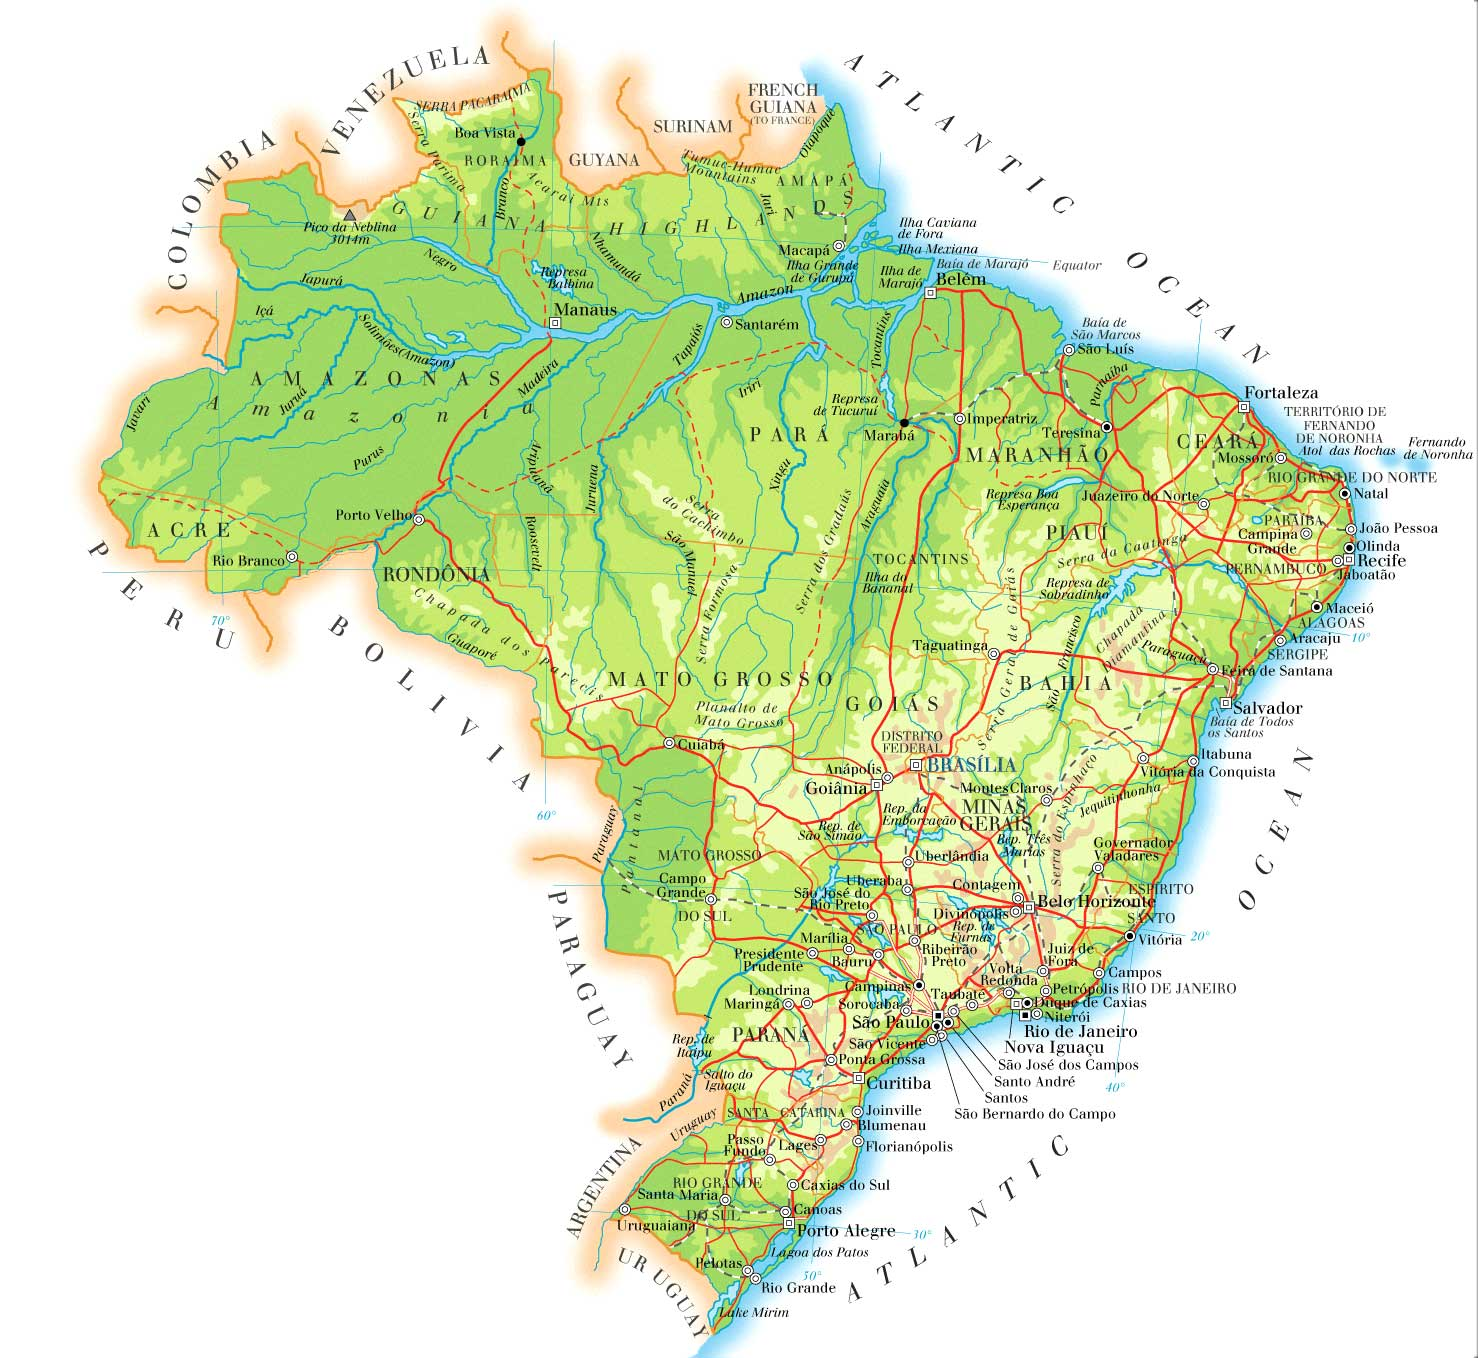 Topographic map of Brazil highlighting major rivers and forest cover.  Image by Kmusser - Own work using Digital Chart of the World and GTOPO data., CC BY-SA 3.0,  https://commons.wikimedia.org/w/index.php?curid=4745680